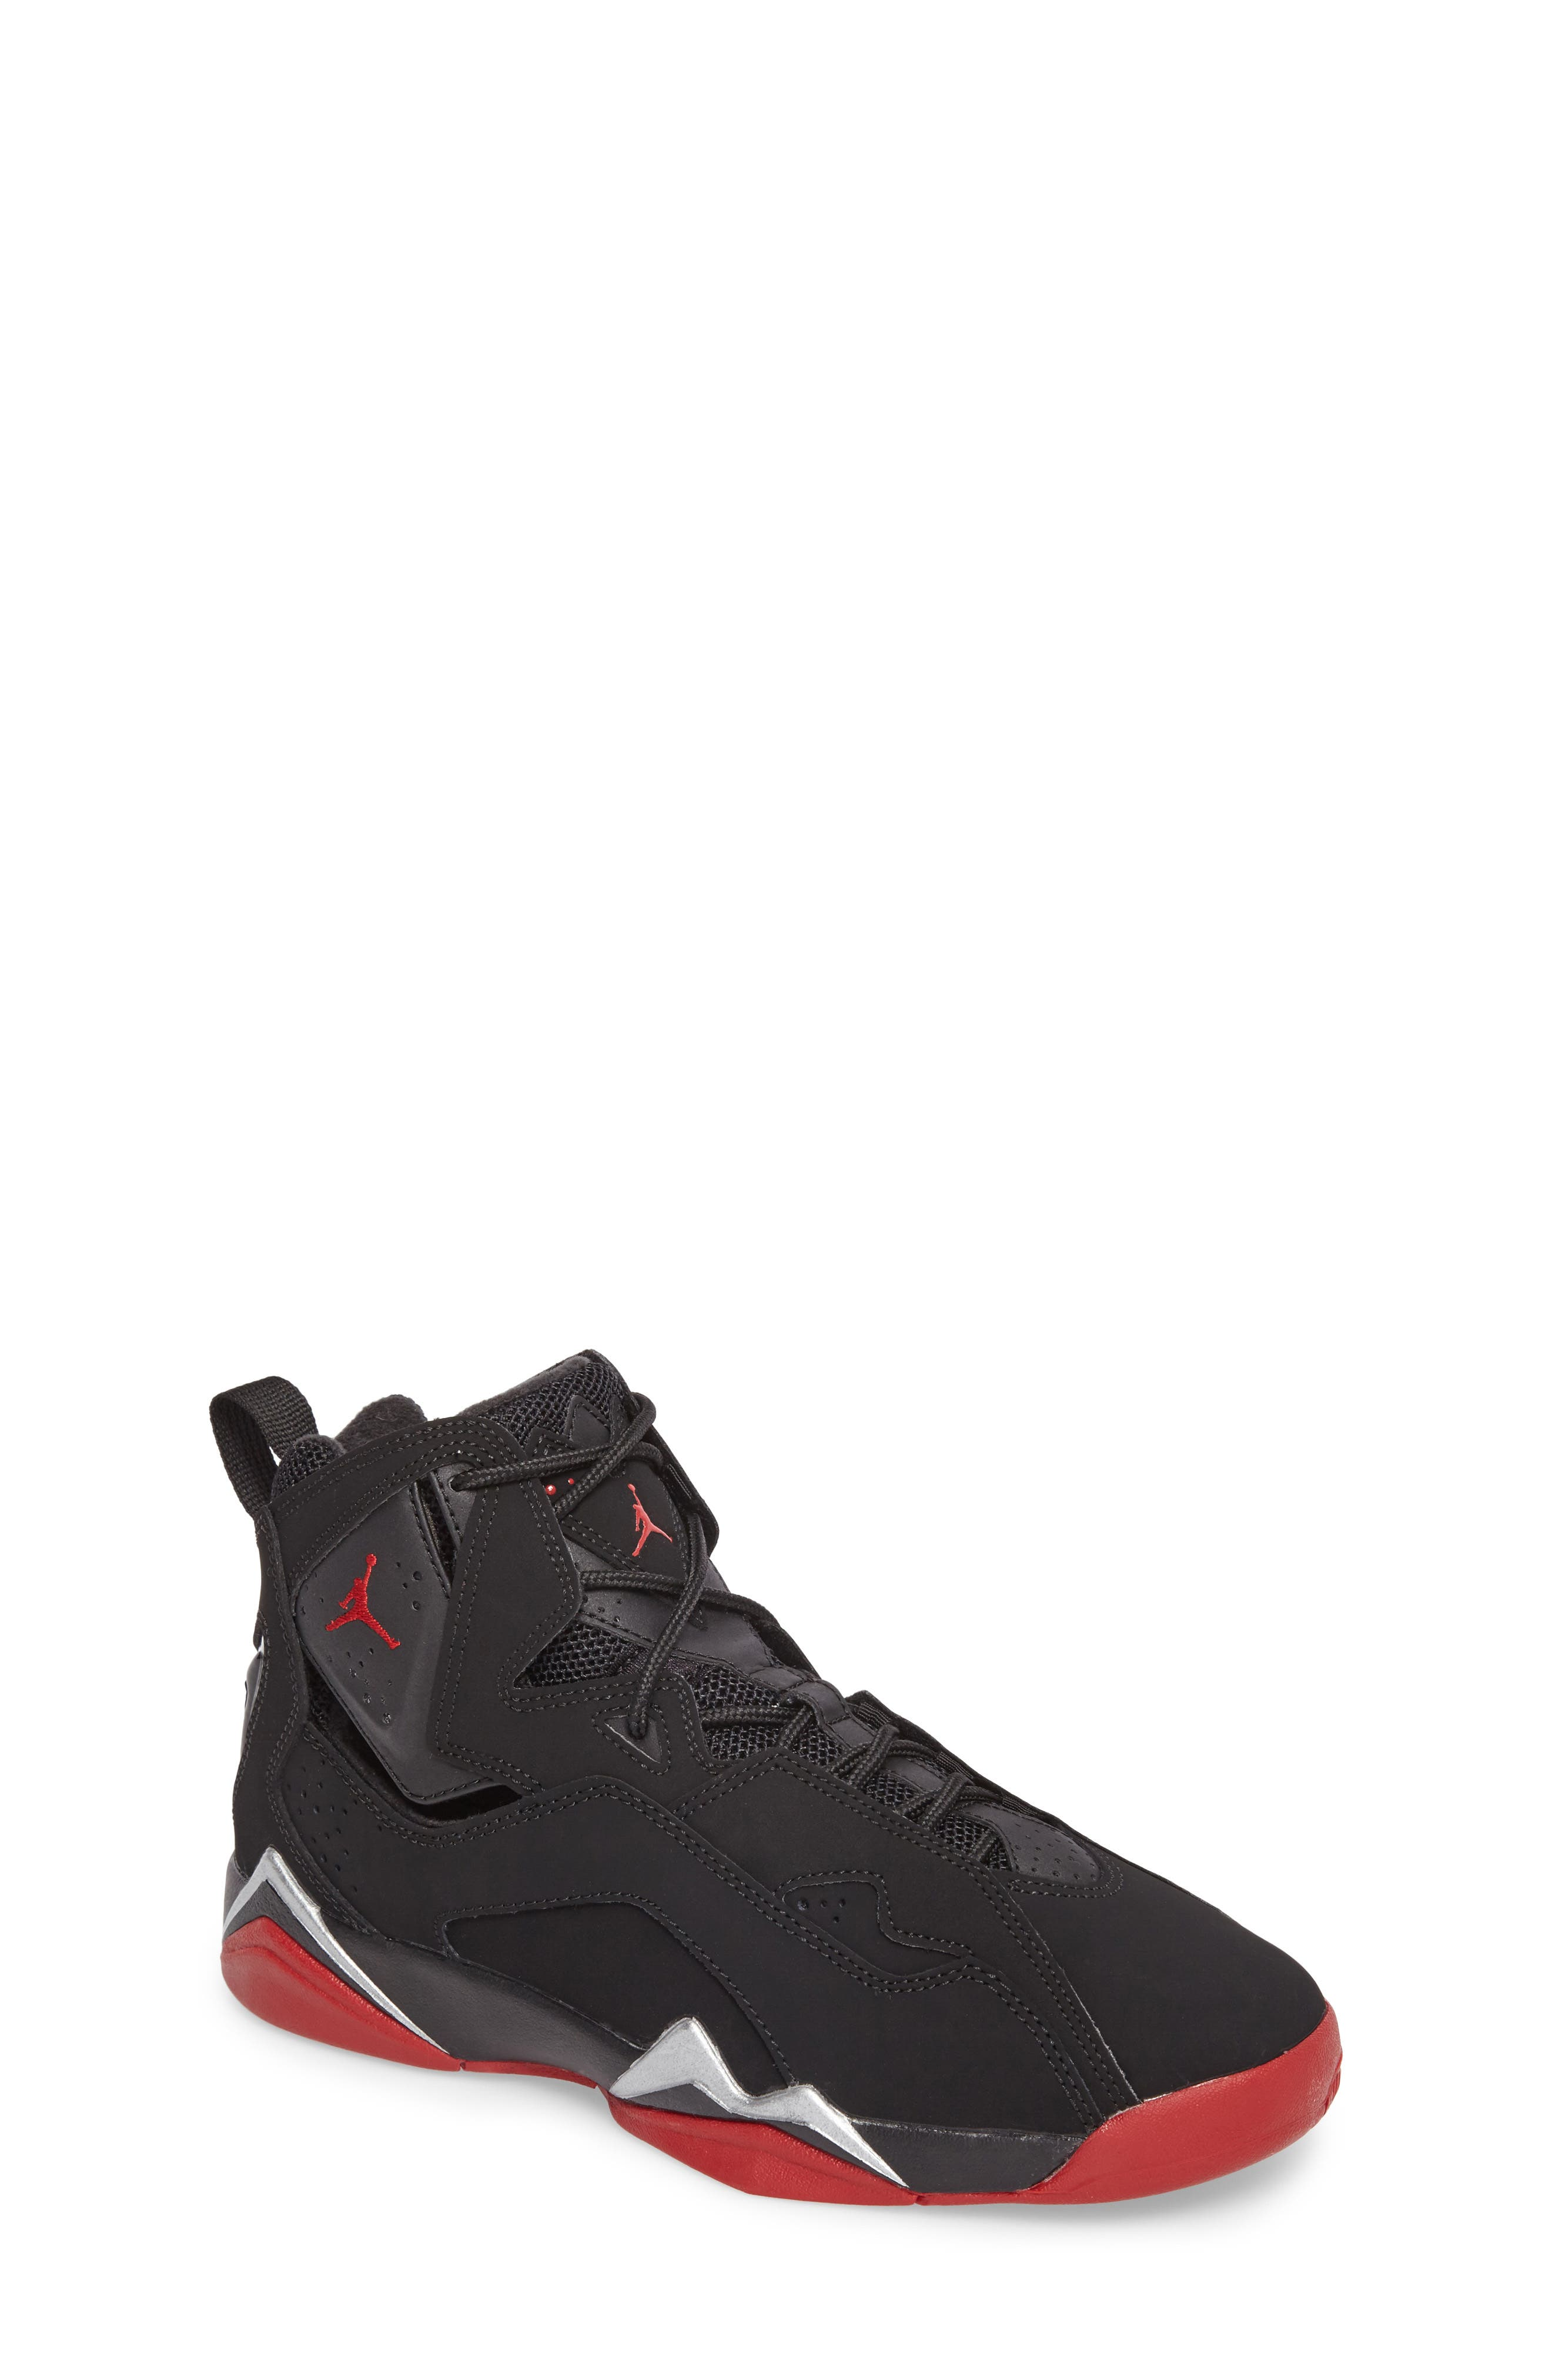 True Flight BG High Top Sneaker,                         Main,                         color, Black/ Gym Red/ Silver